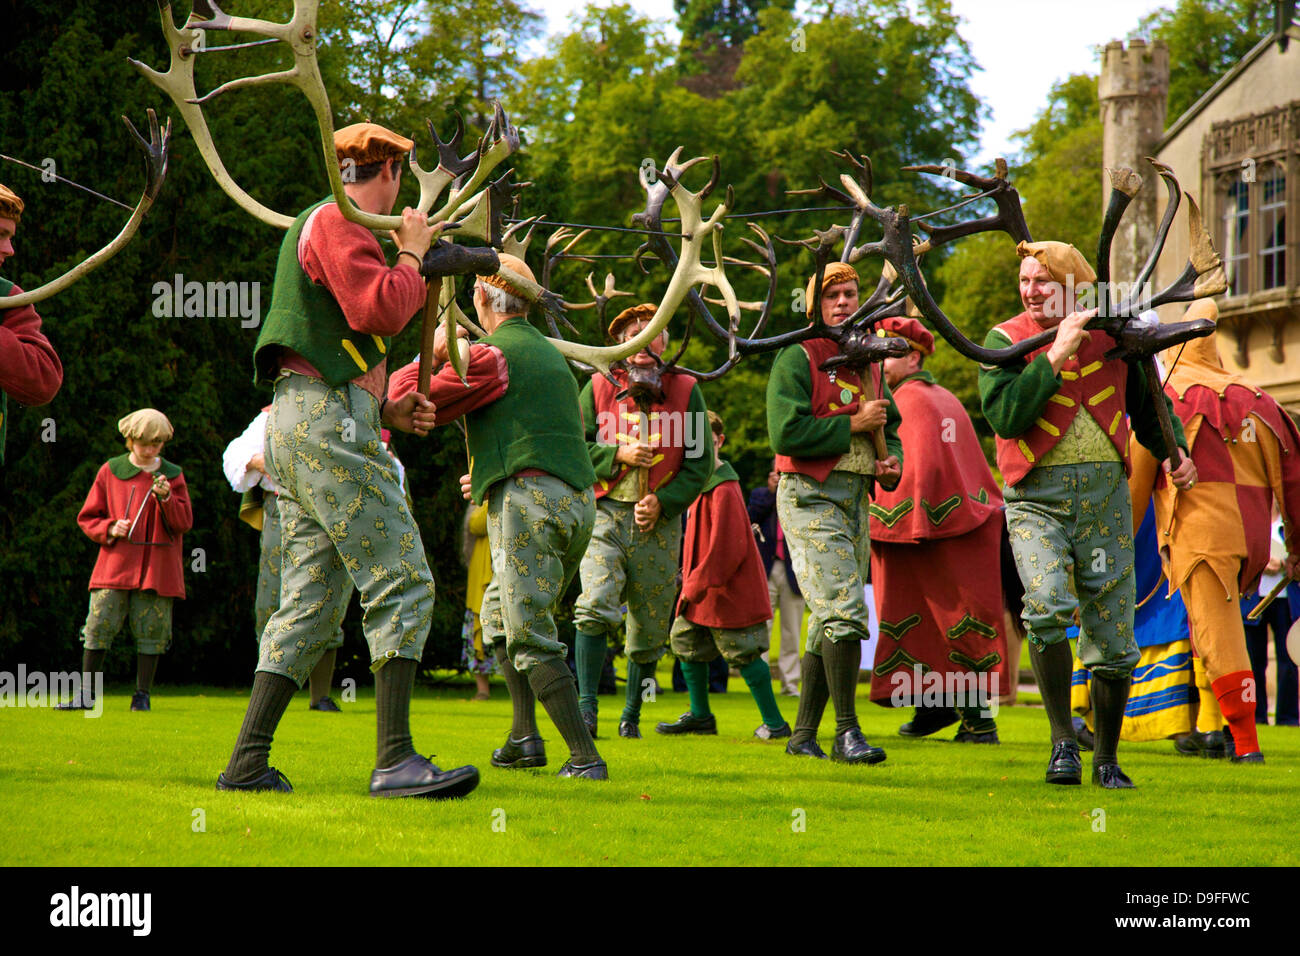 Abbots Bromley Horn Dance, Abbots Bromley, Staffordshire, England, UK - Stock Image